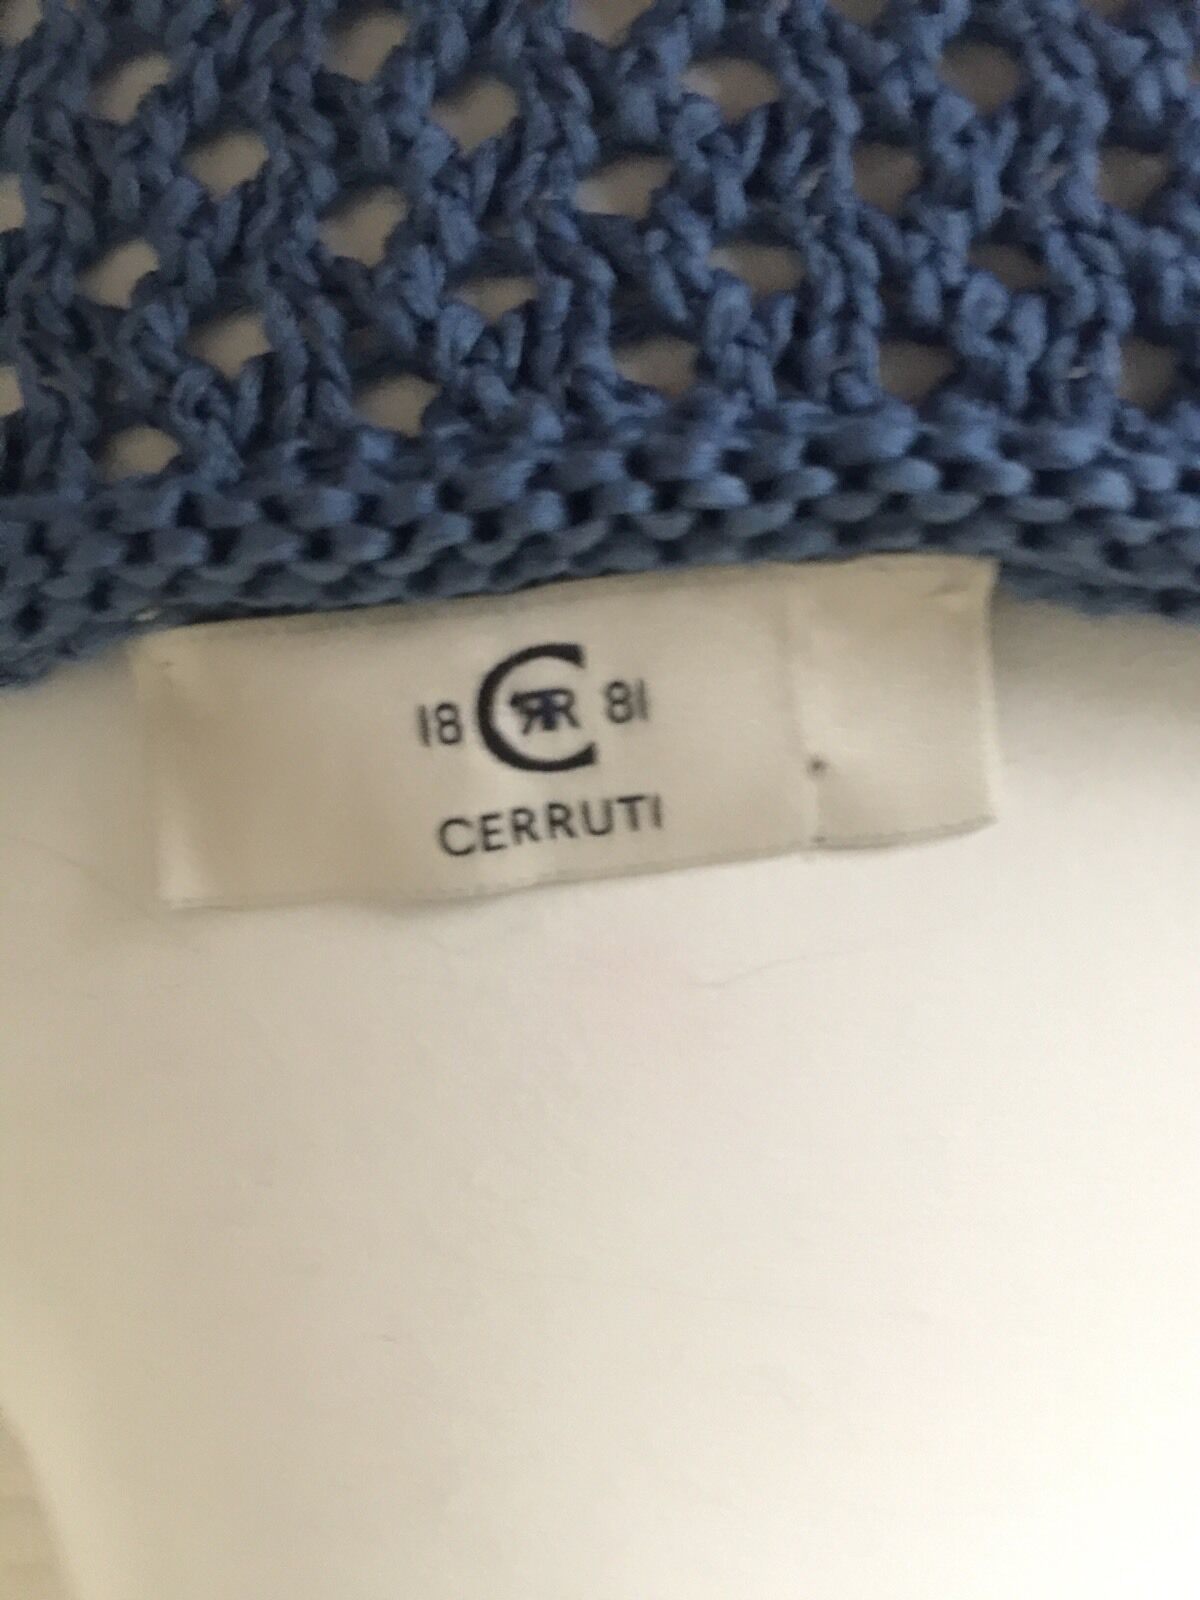 CERRUTI 1881 Dress Light bluee Knit Bodycon Dress Dress Dress US L e0d965